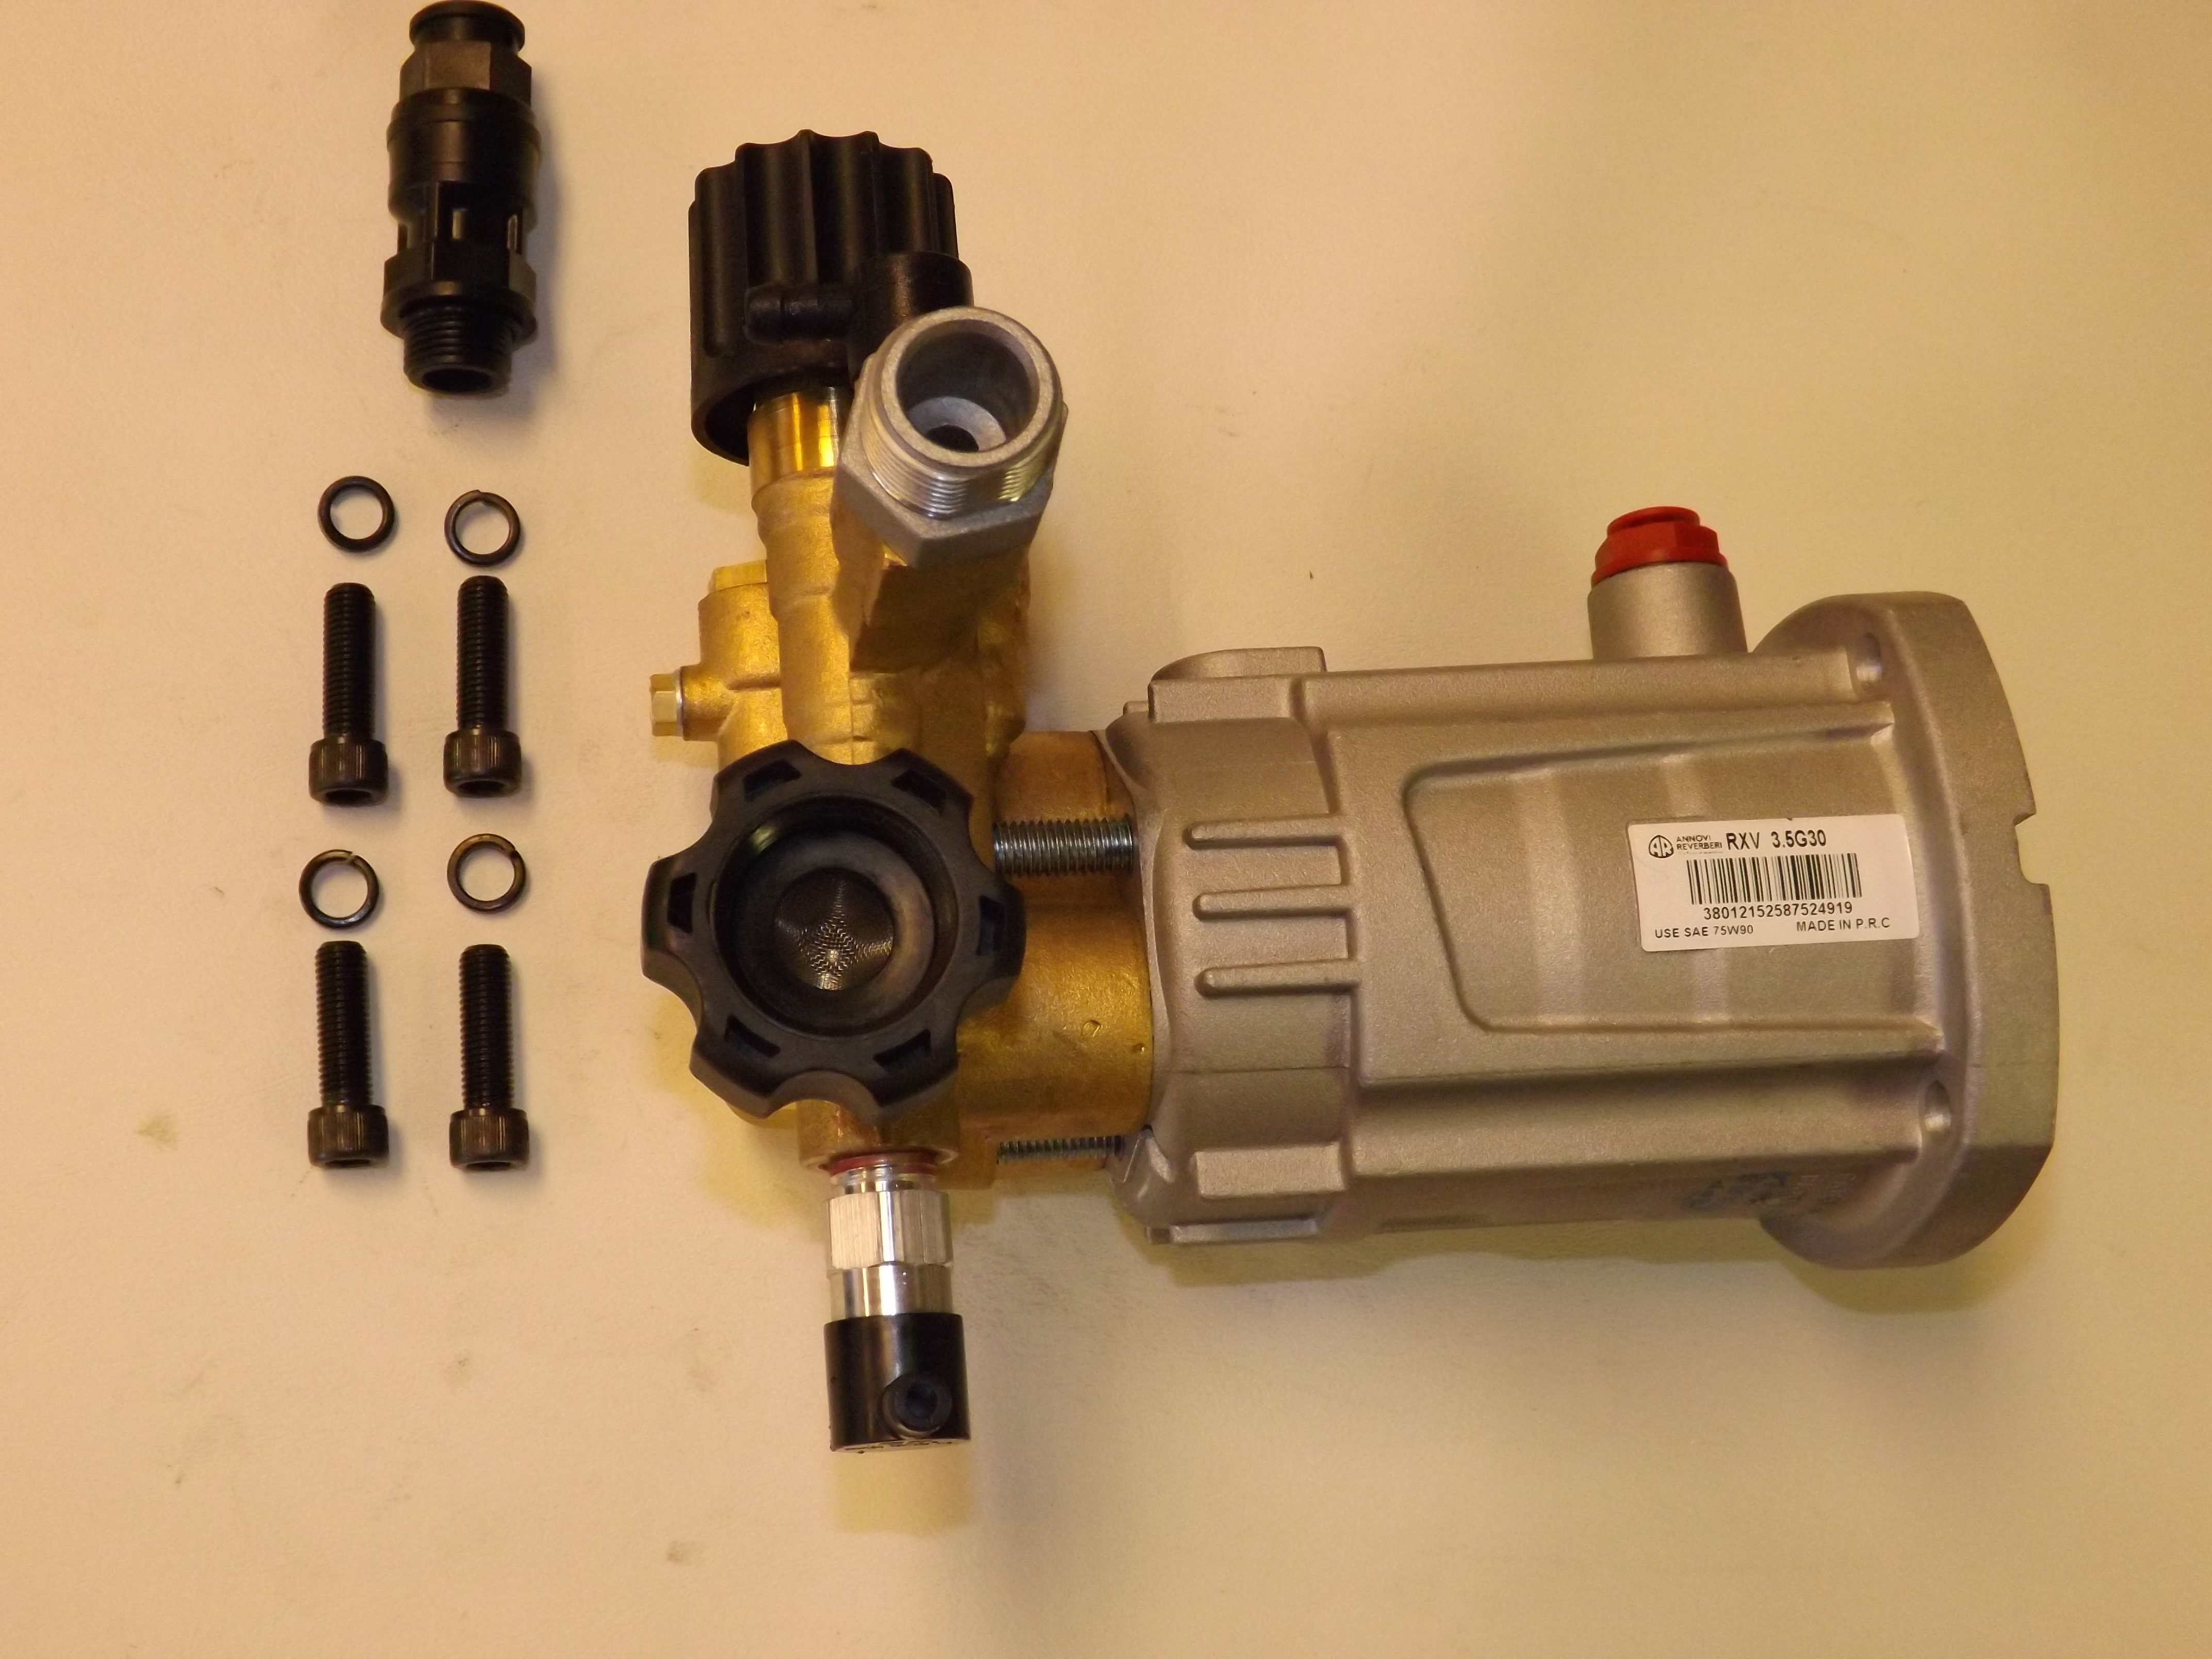 AR Replacement Pump (3.5gpm, 3000psi)